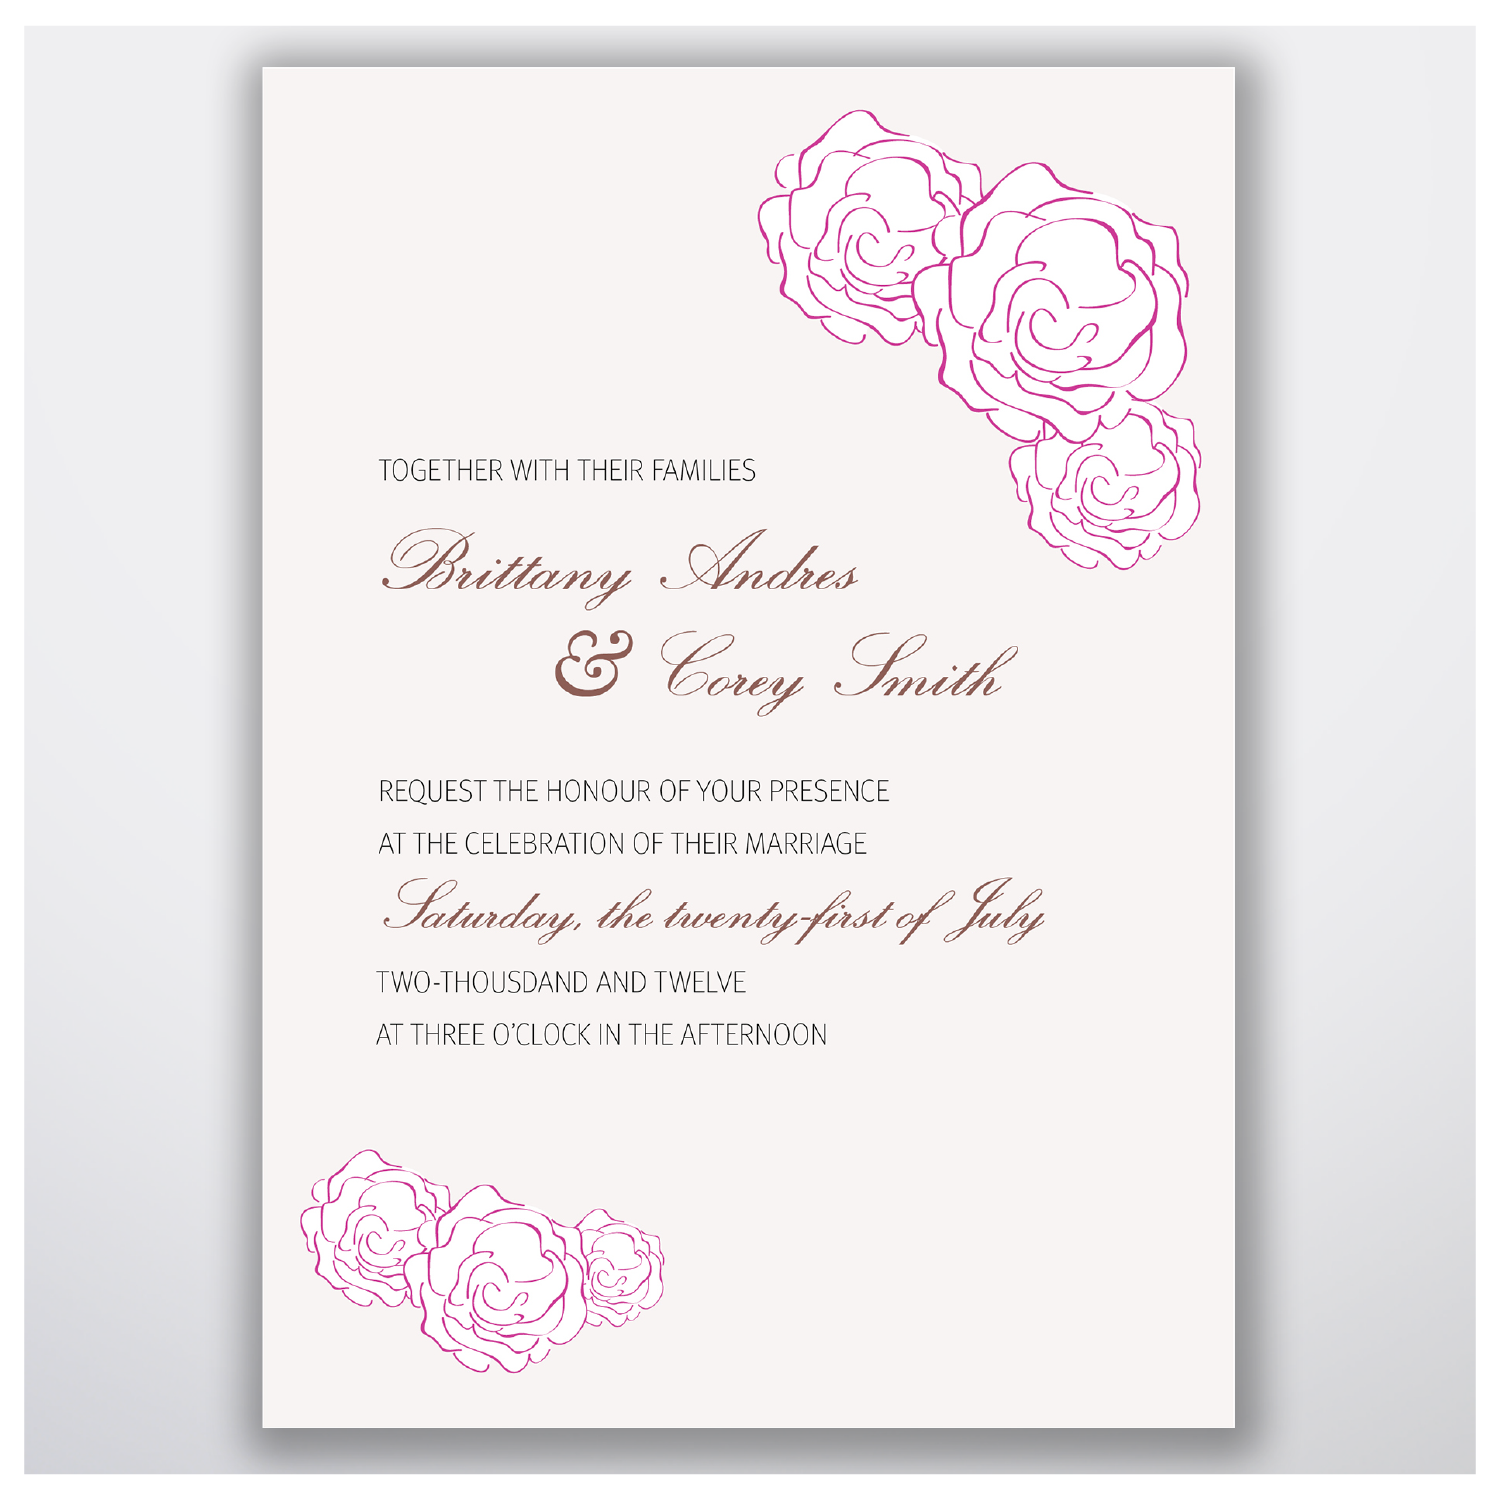 Invitations Brittany Corey-01.png